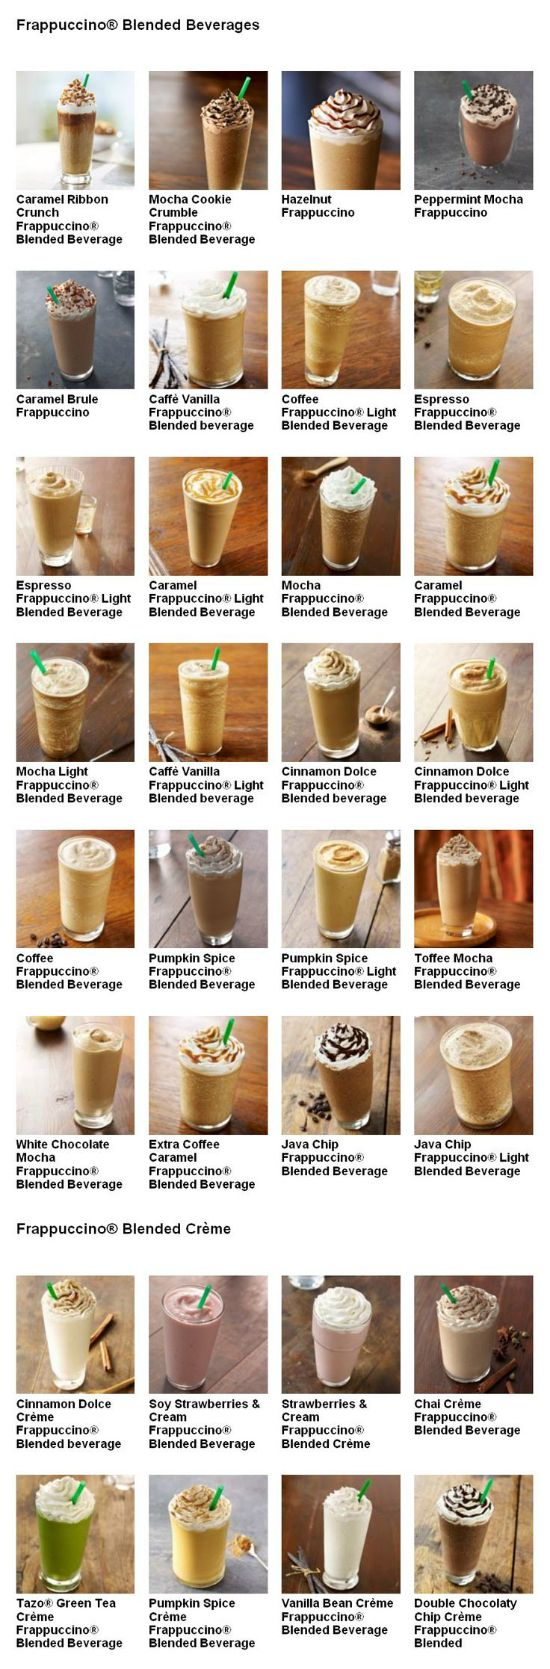 Starbucks Frappuccino Menu inspiration ideas...